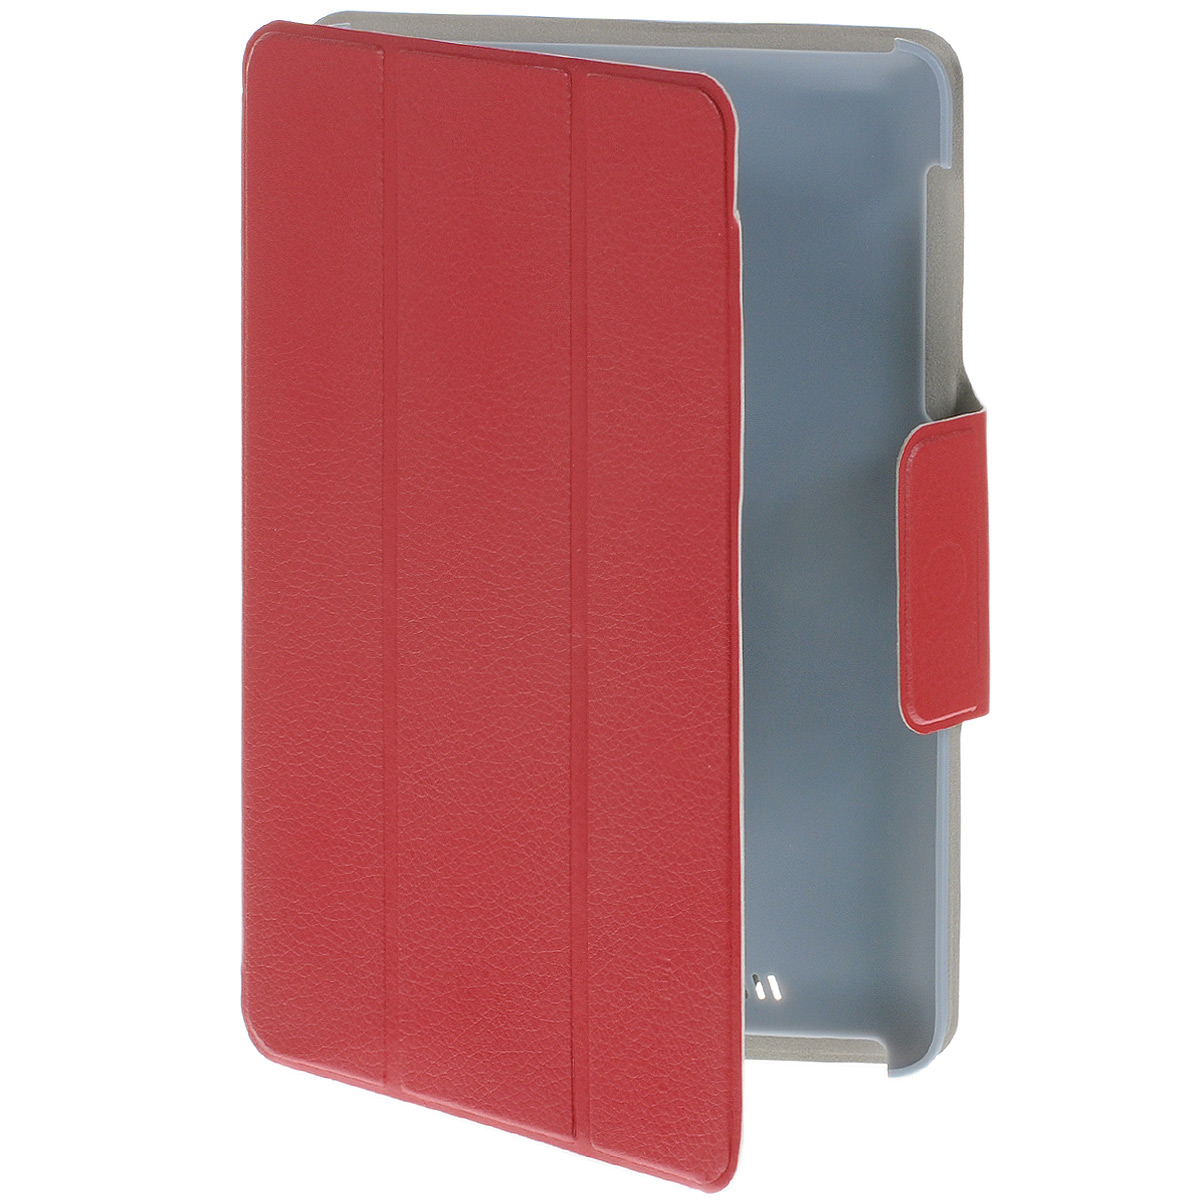 IT Baggage Hard case чехол для Asus Nexus 7, Red new folding stand rotating pu leather case for asus fonepad 7 fe170 7 tablet